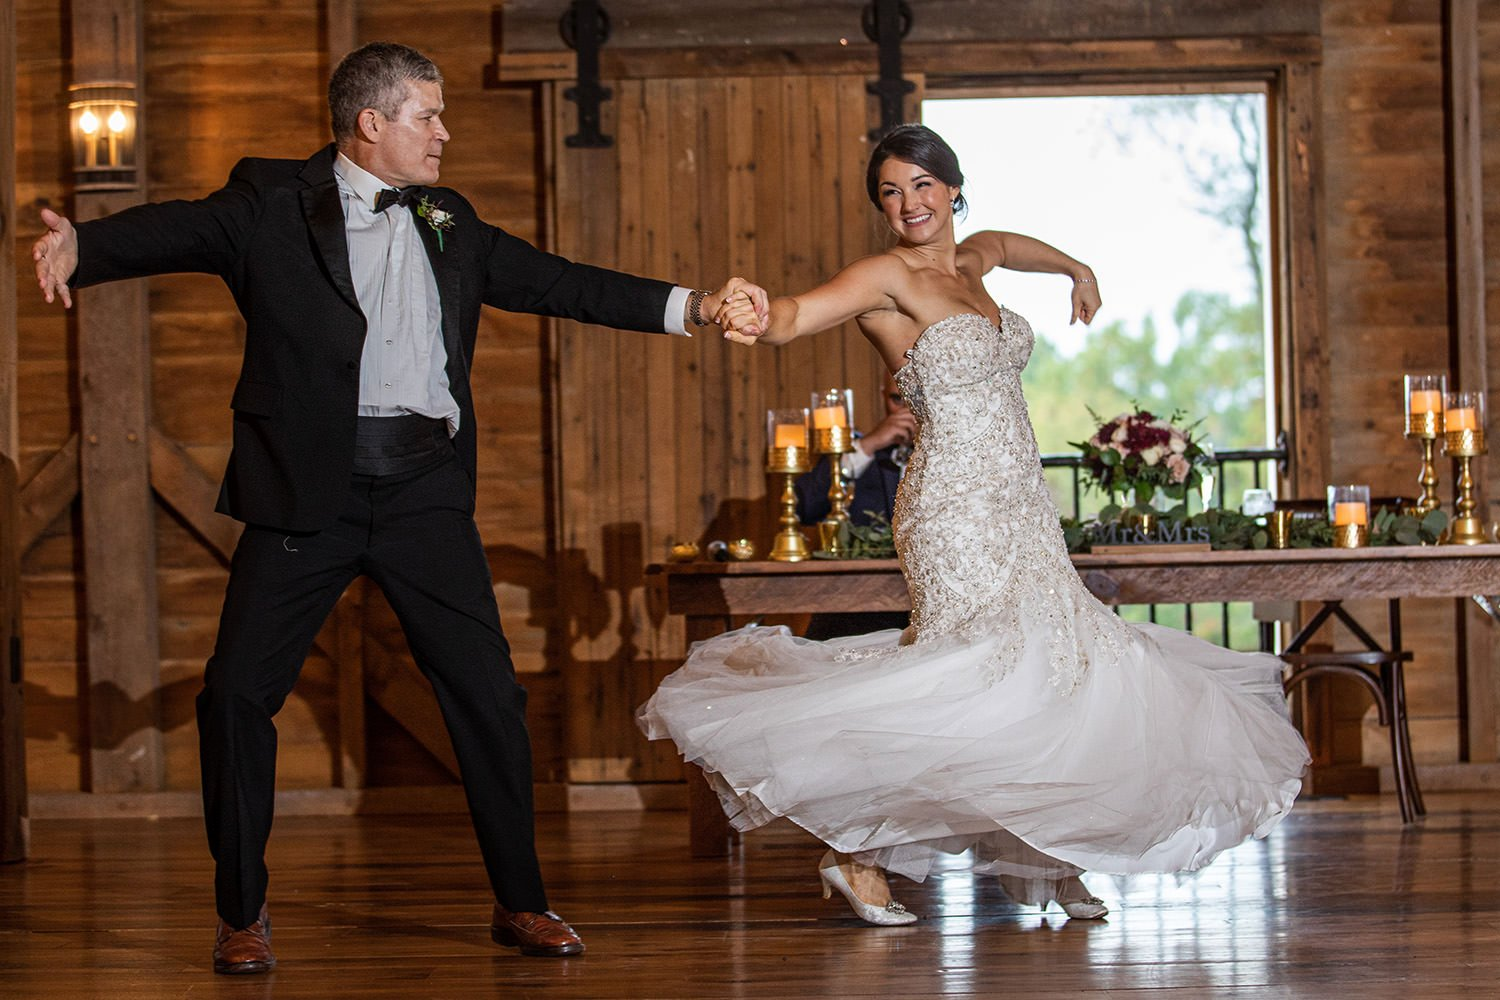 a father-of-the-bride sharing a wedding dance with his daughter to one of our father-daughter dance songs on the list